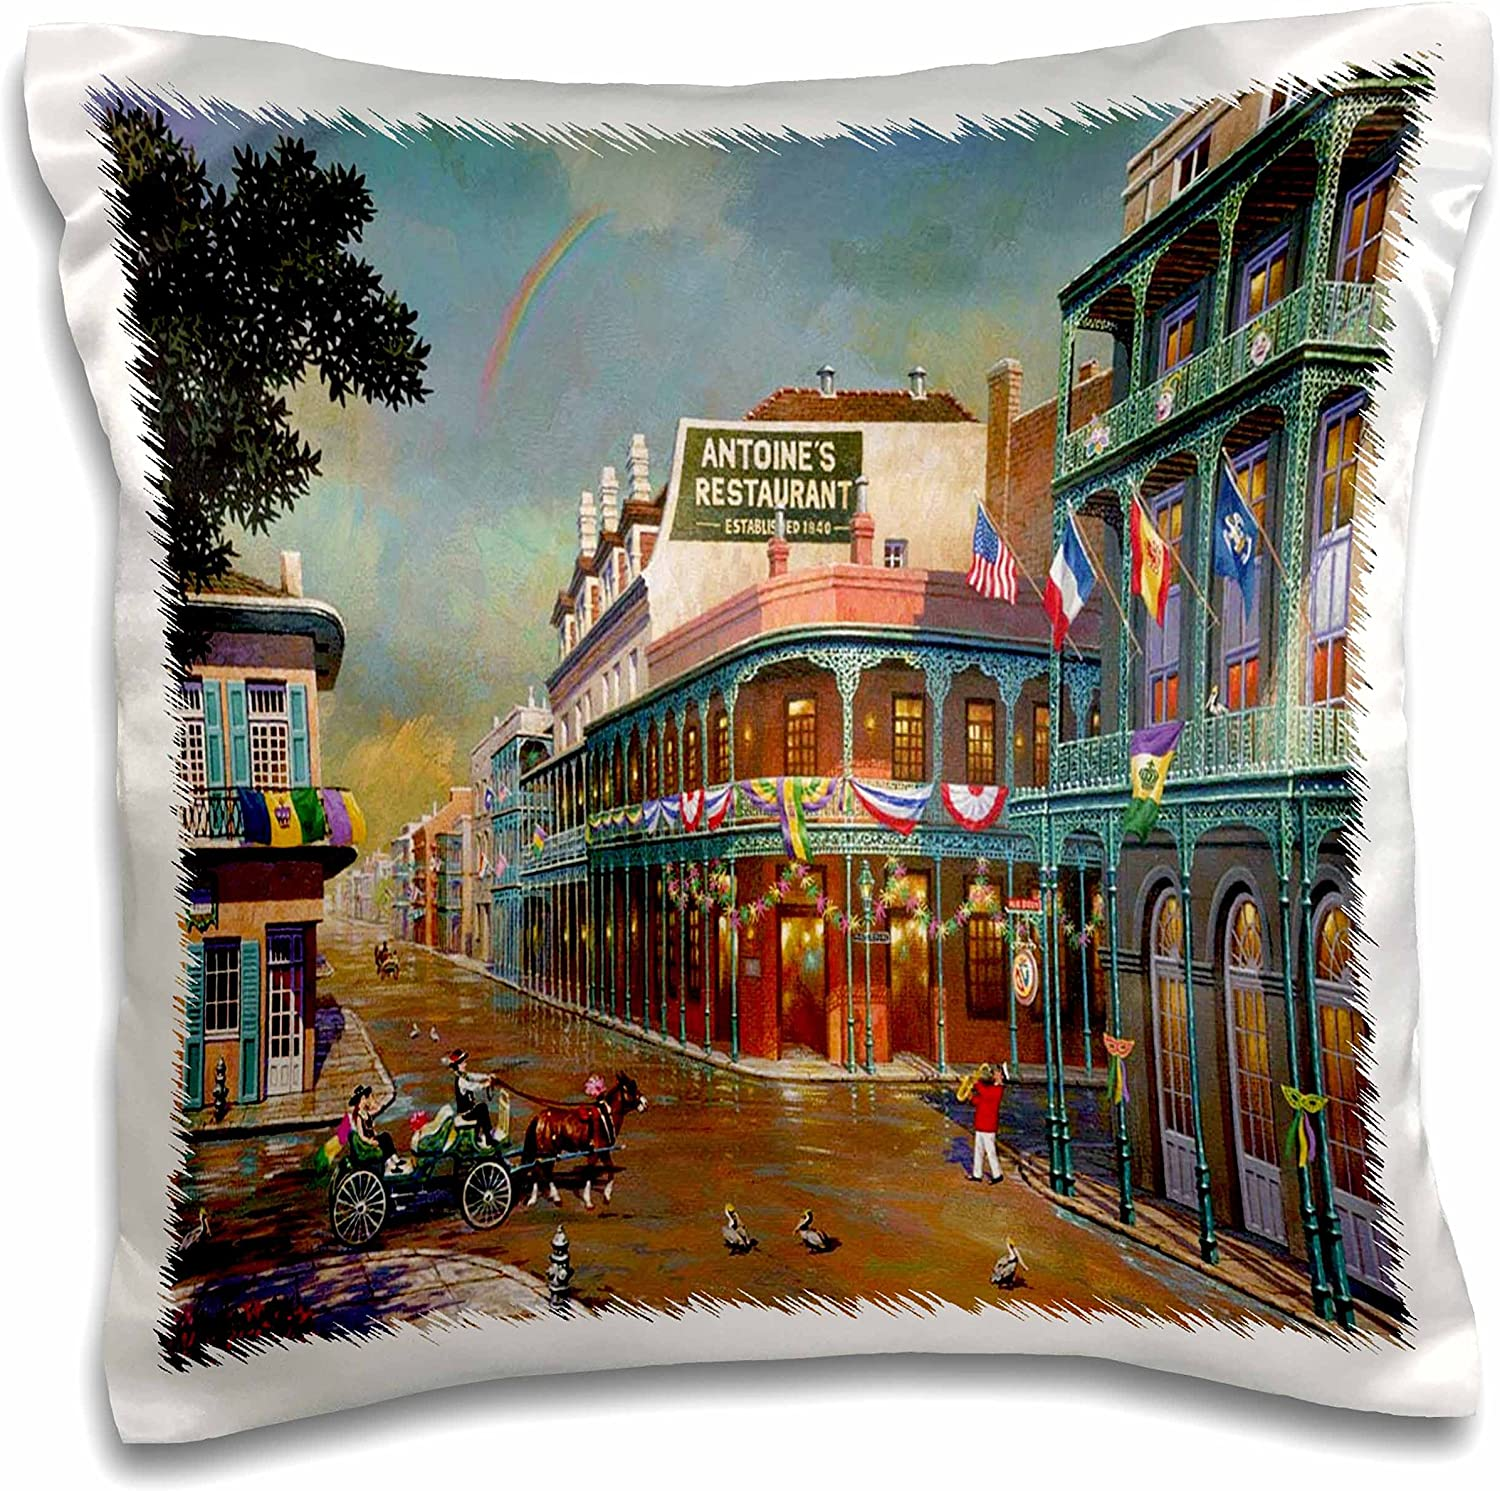 Amazon Com 3drose Old New Orleans Painting Pillow Case 16 By 16 Inch Pc 80505 1 Arts Crafts Sewing